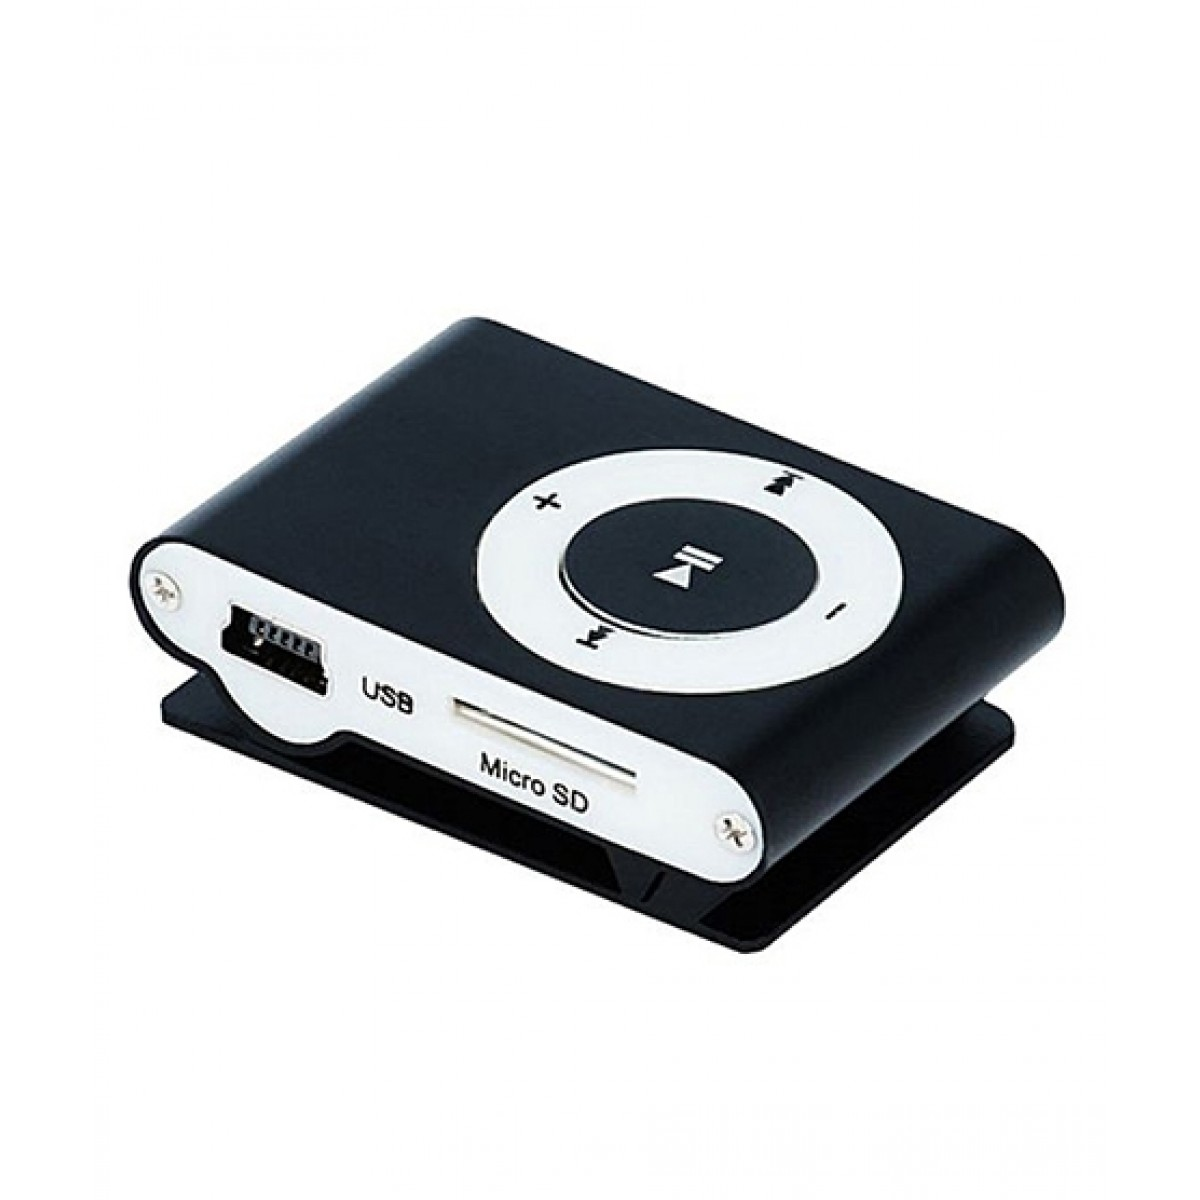 Rubian MP3 Player With 2GB Memory Card